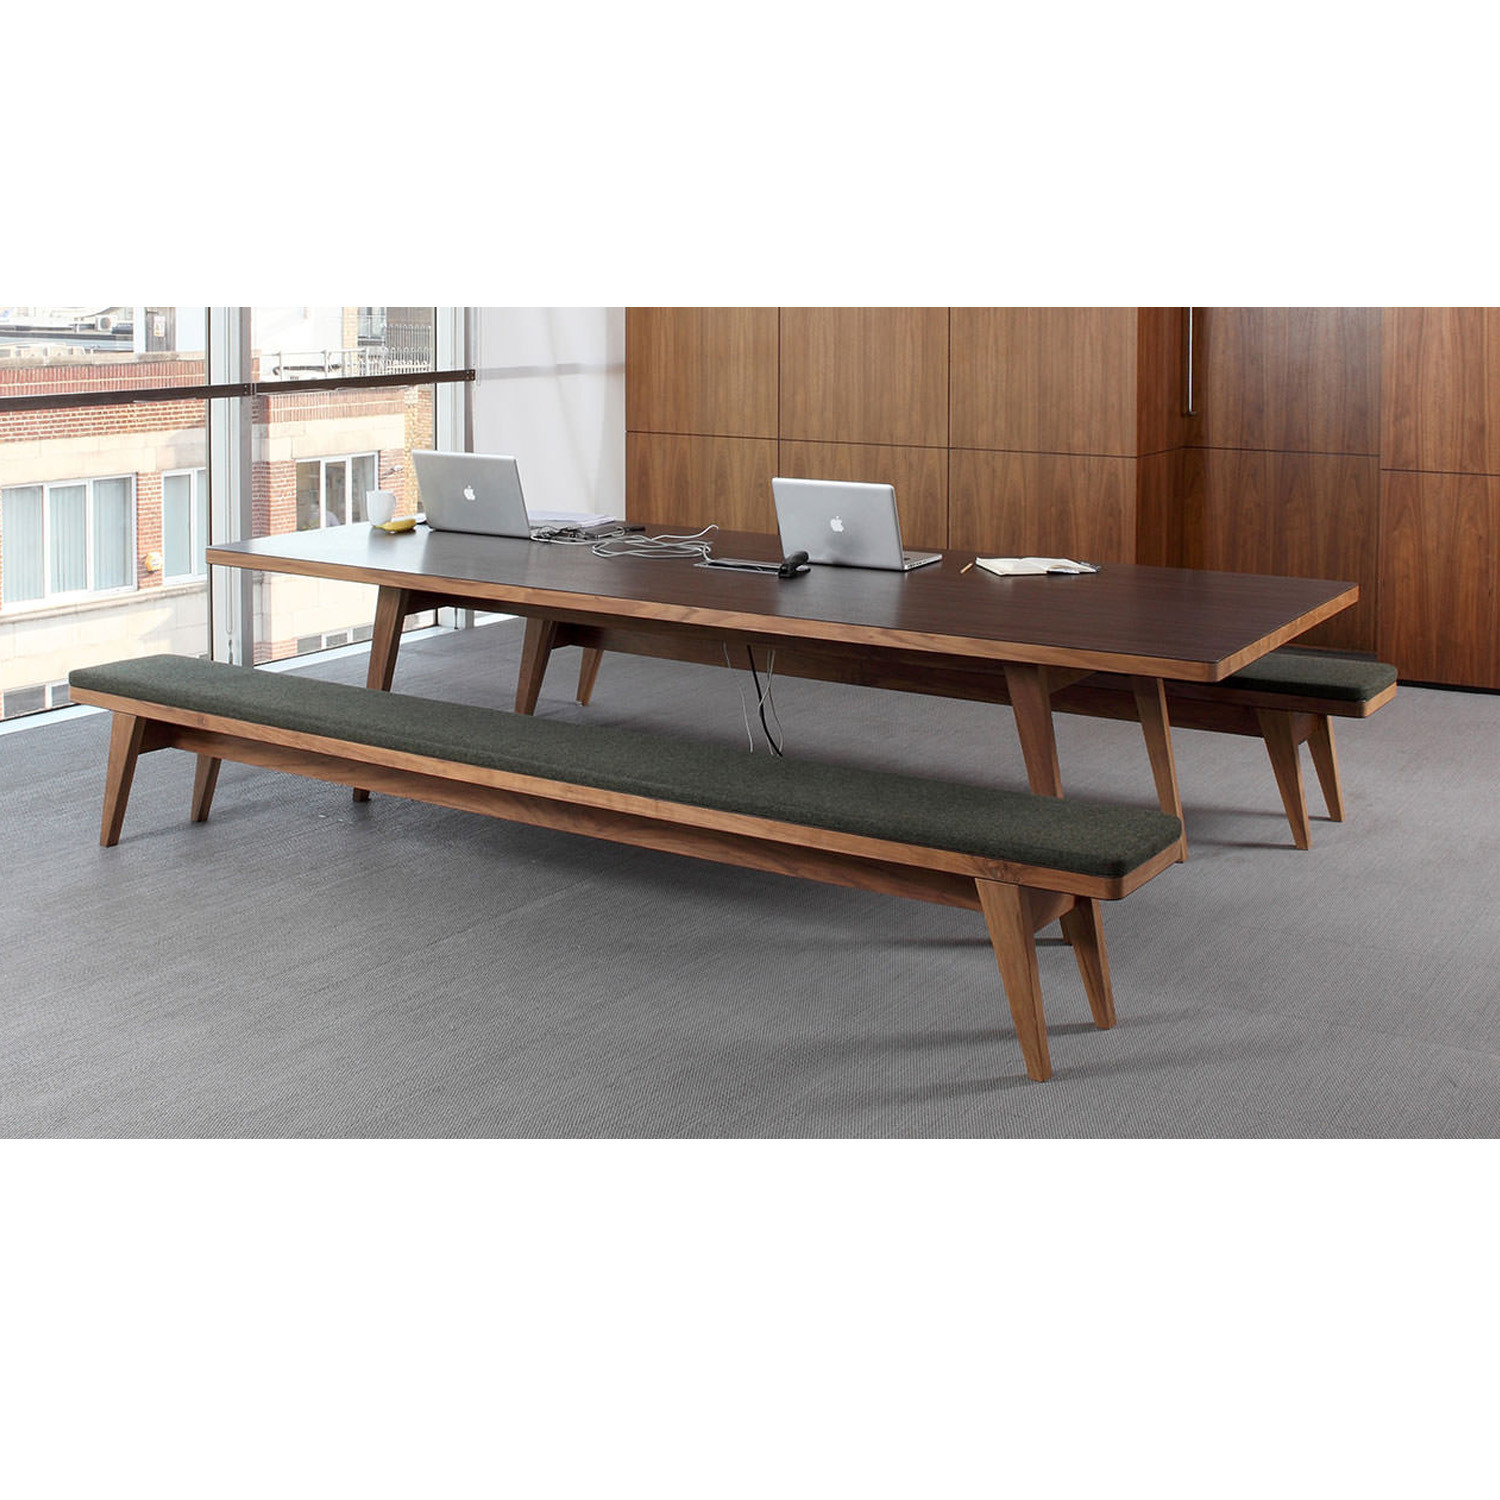 Osprey Table and Bench Seating